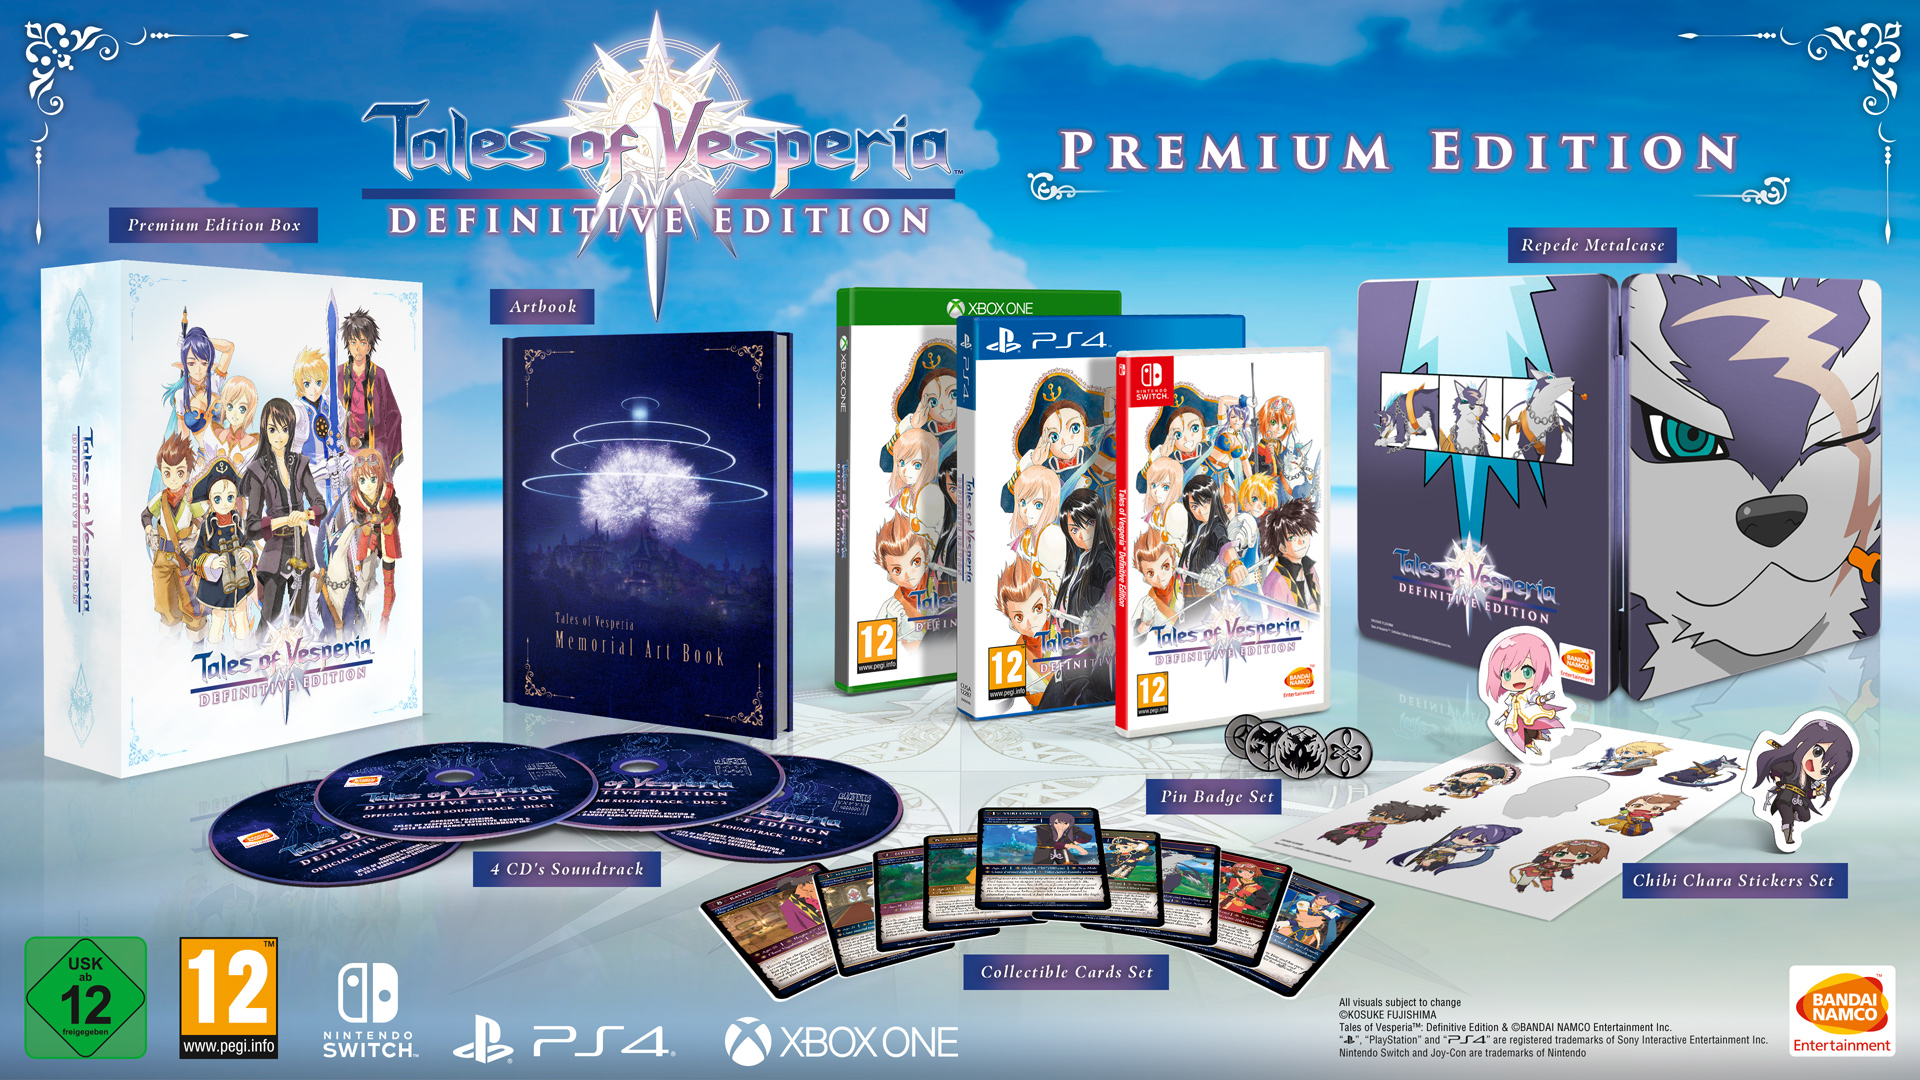 Buy Tales Of Vesperia Definitive Edition Premium Edition